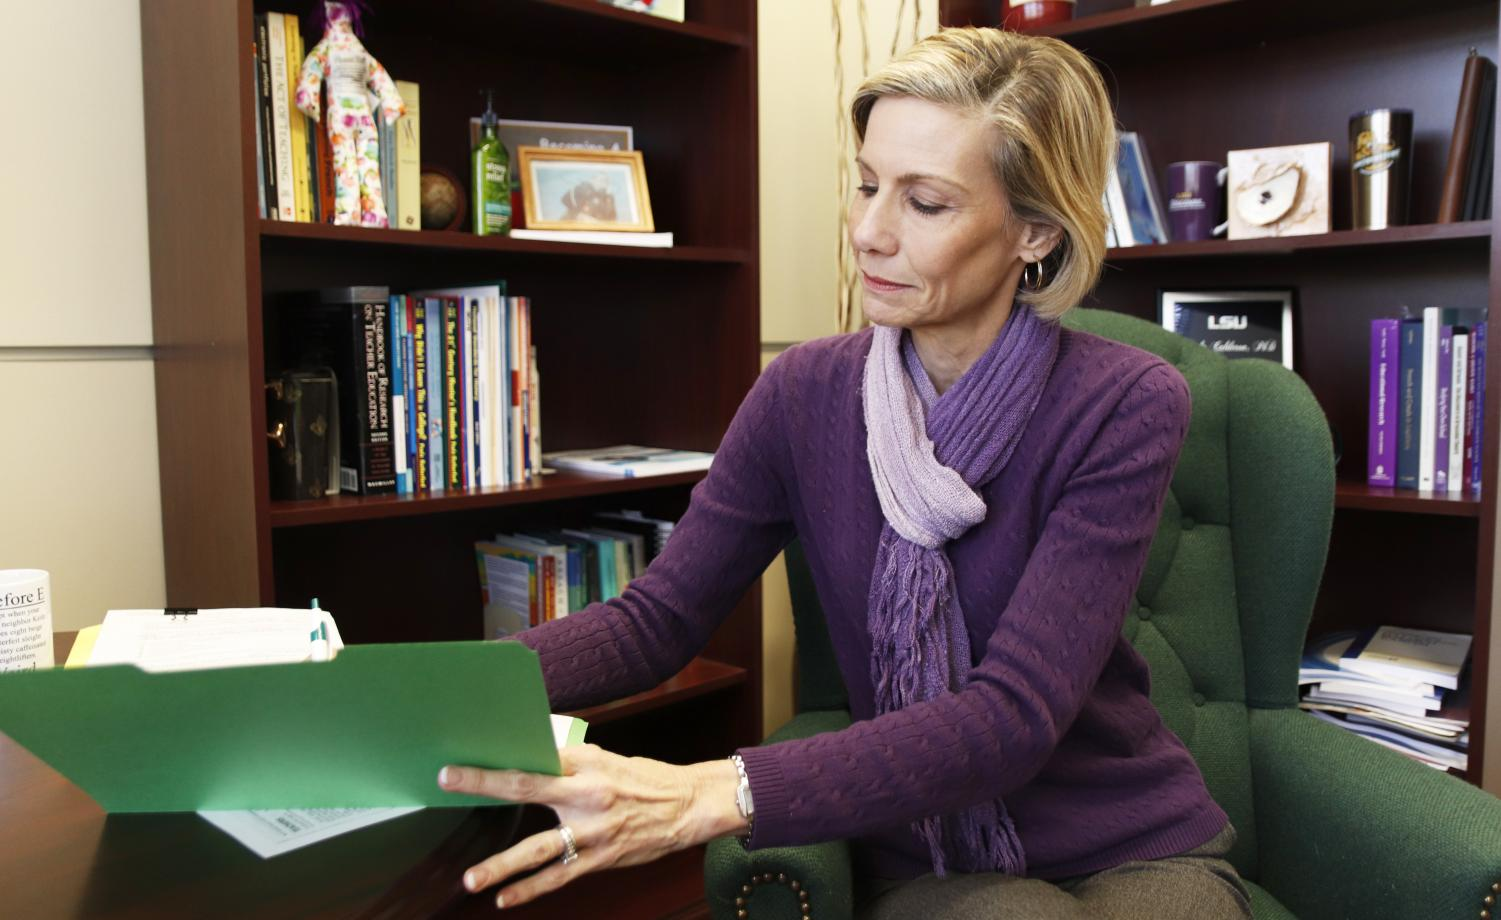 Paula Calderon, dean of the College of Education, reviews files in her office. She and Payton Bryant, university alumna and a teacher at Luling Elementary School, went to Washington, D.C. for discussions about preparing teachers for their career.